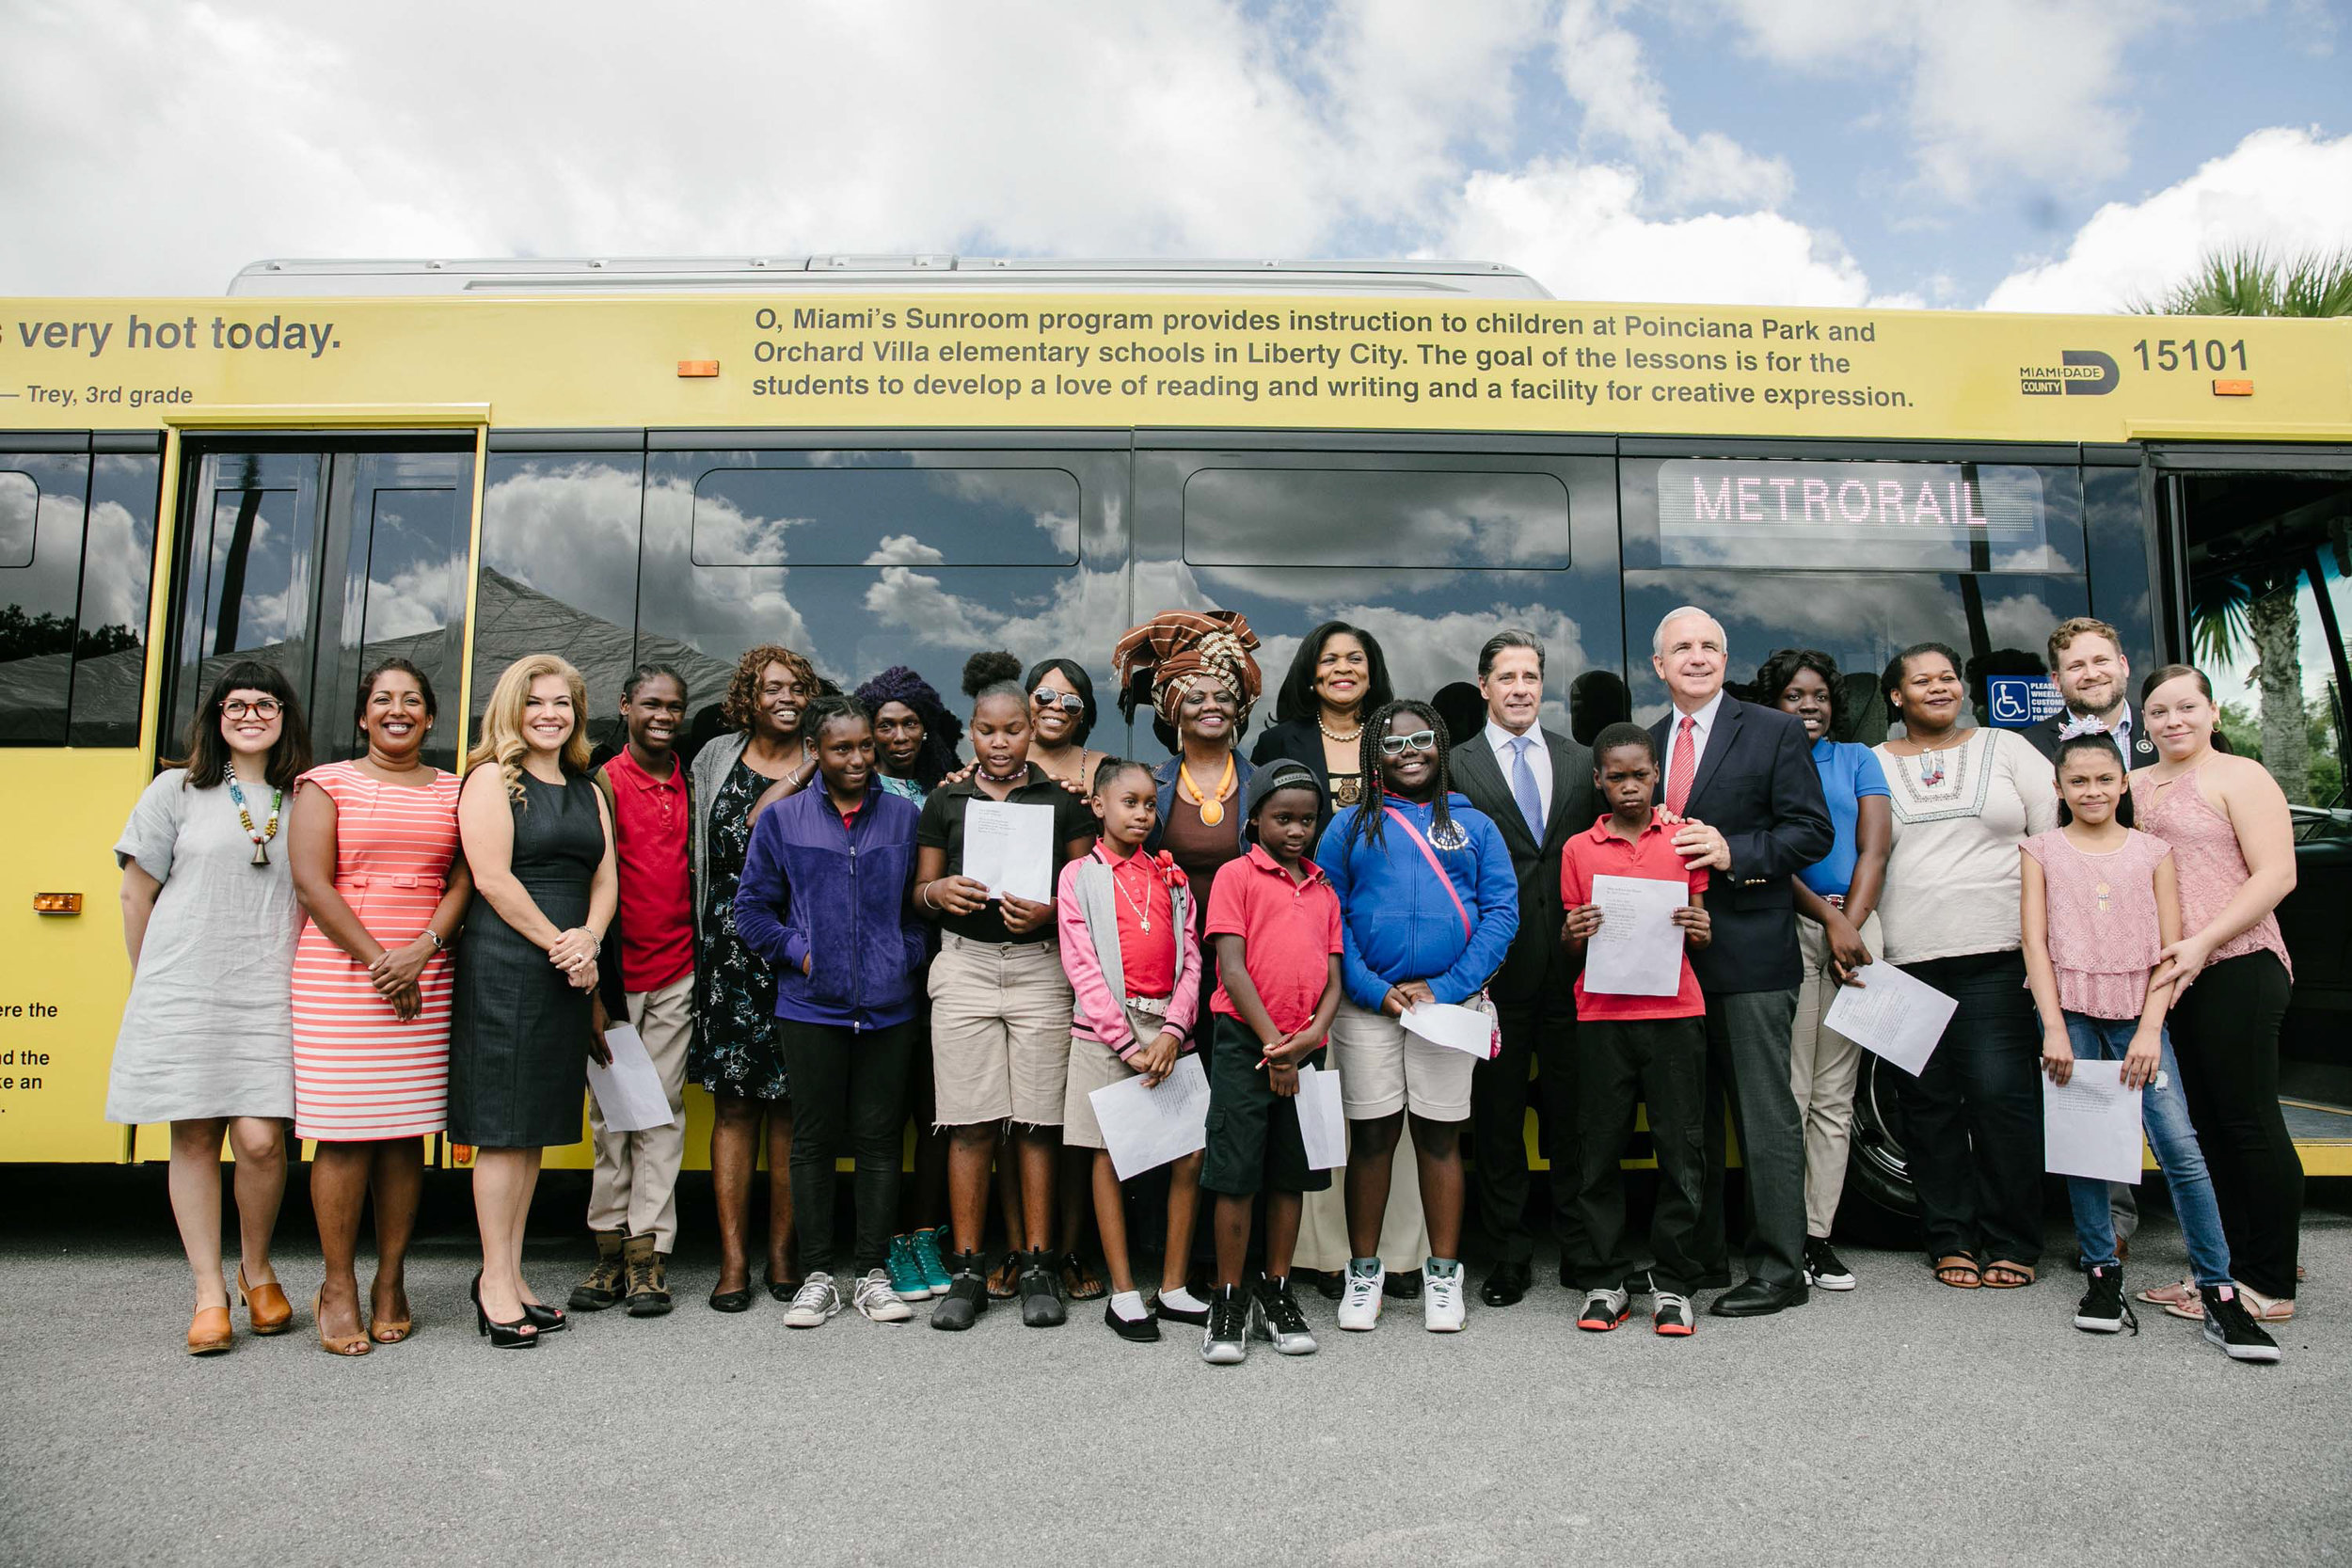 The student poets and family members, joined by Mayor Carlos Gimenez, Superintendent Alberto Carvalho, Dr. Dorothy Bendross-Mindingall, Transit Director Alice Bravo, and Dr. Amrita Prakash.